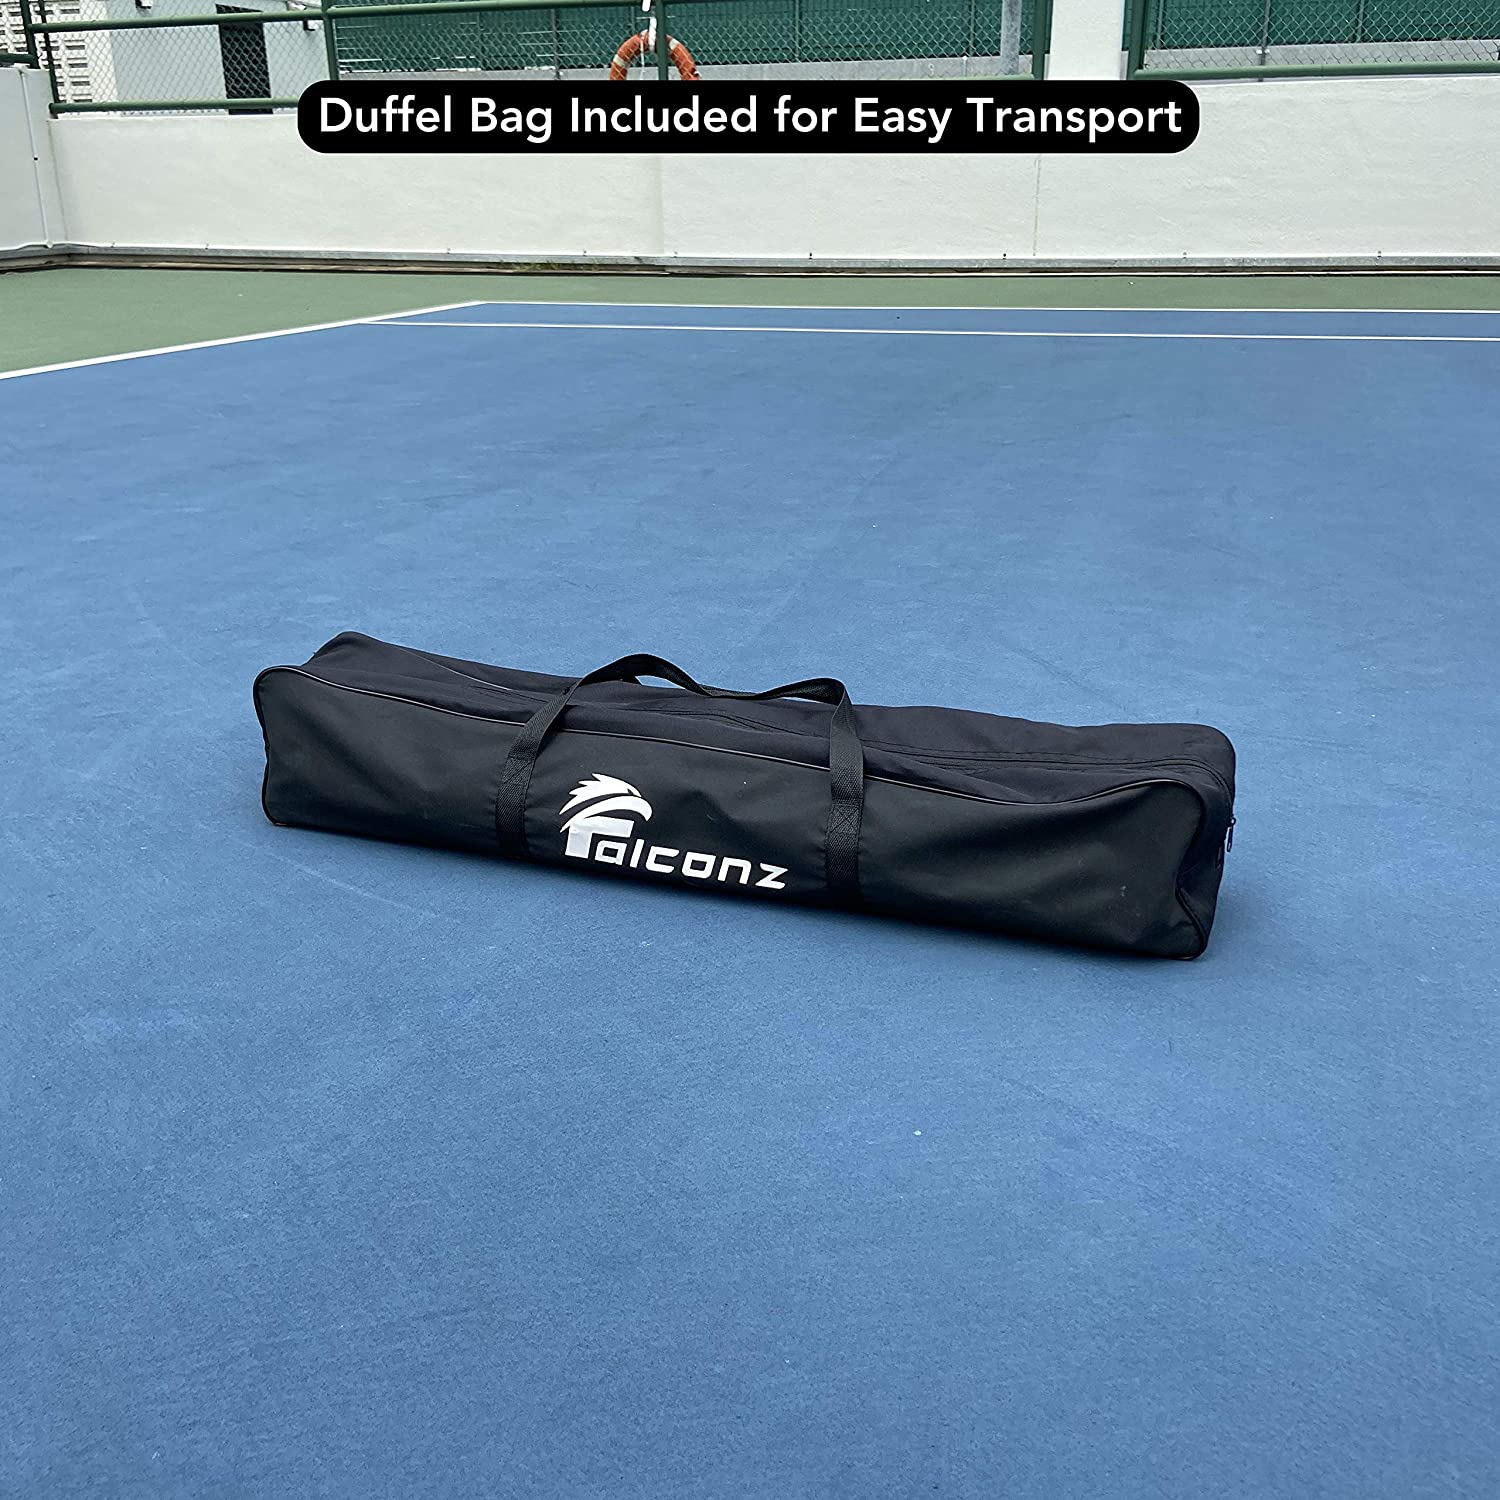 Portable 22 Feet Long Net with Steel Frame and PE Netting Falconz Regulation Size Pickleball Net for Outdoor and Indoor Carry Bag Included